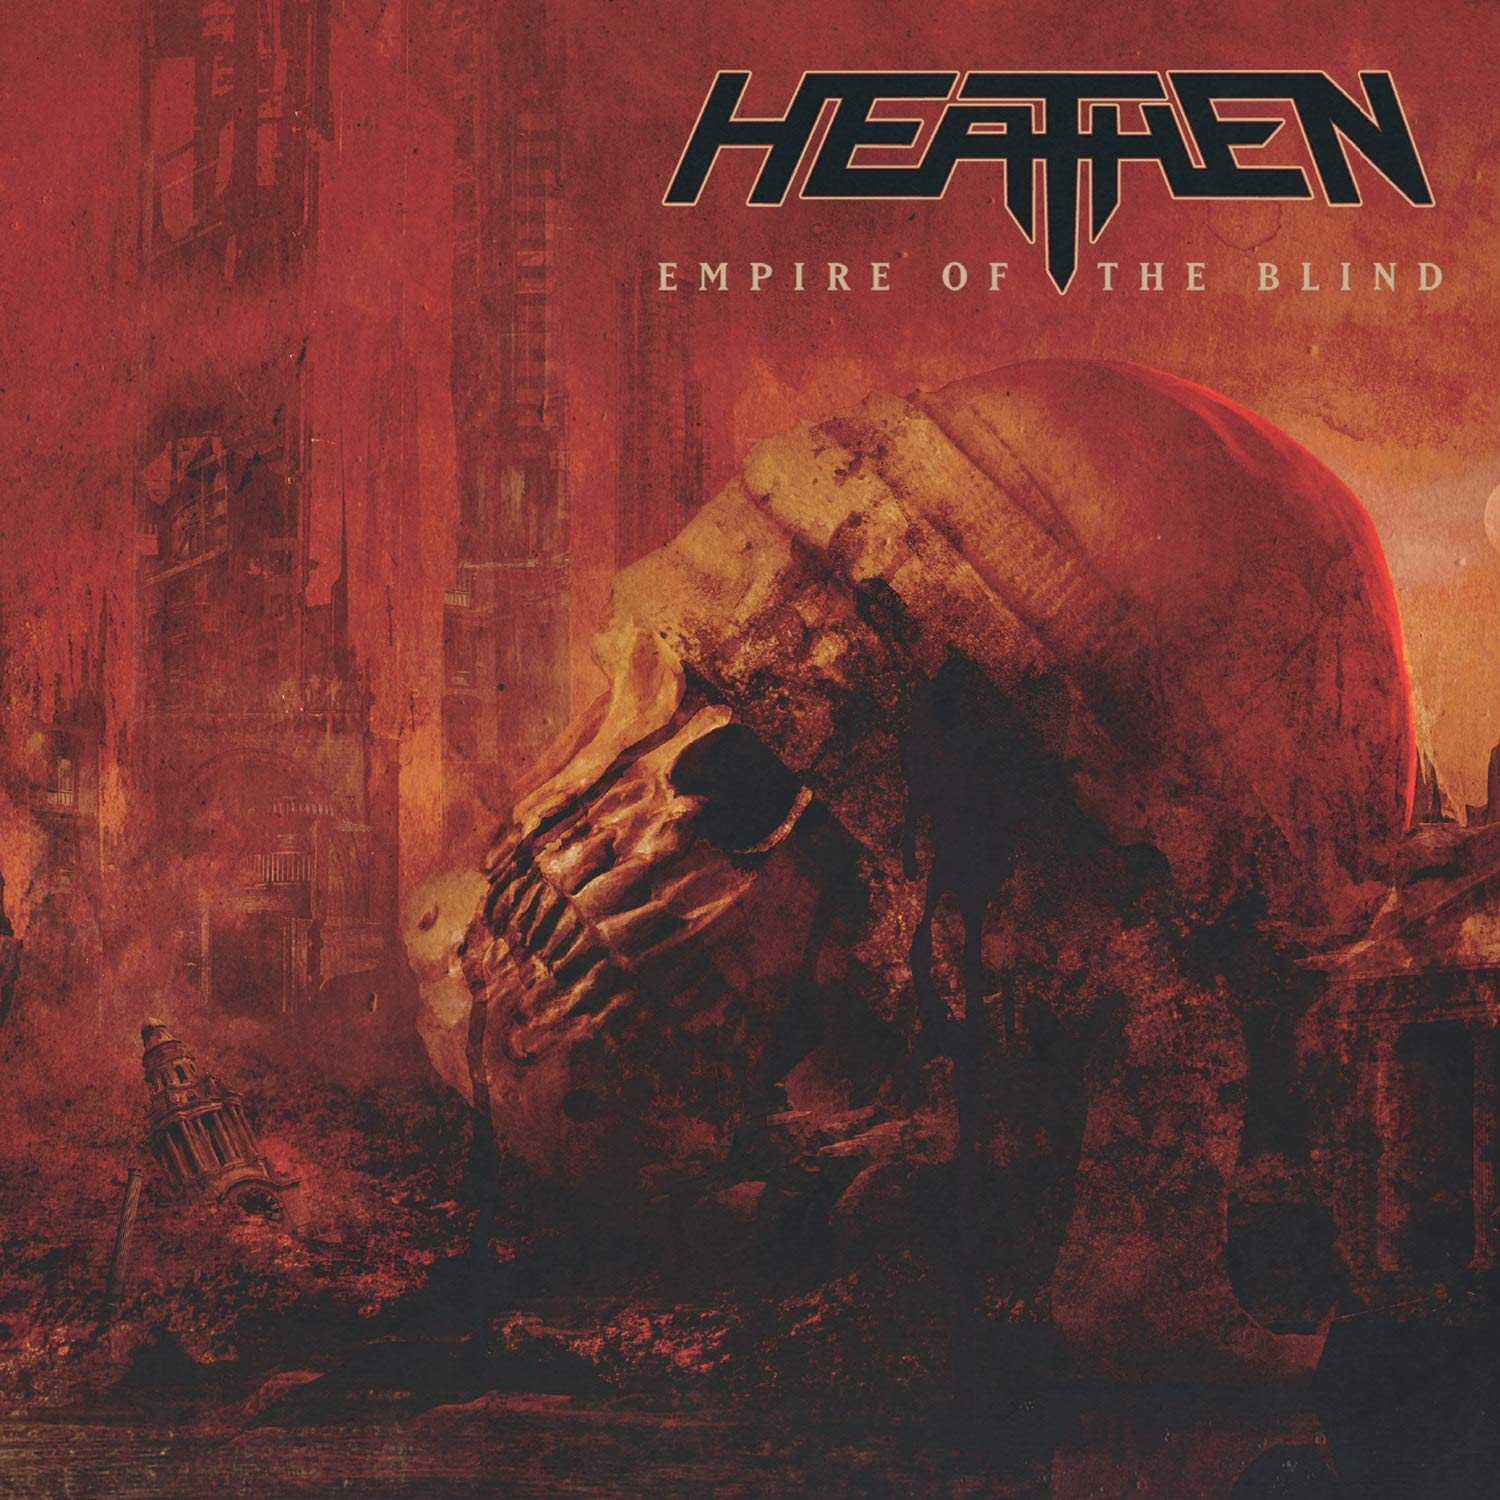 Heathen – Empire of the Blind (2020) [FLAC]